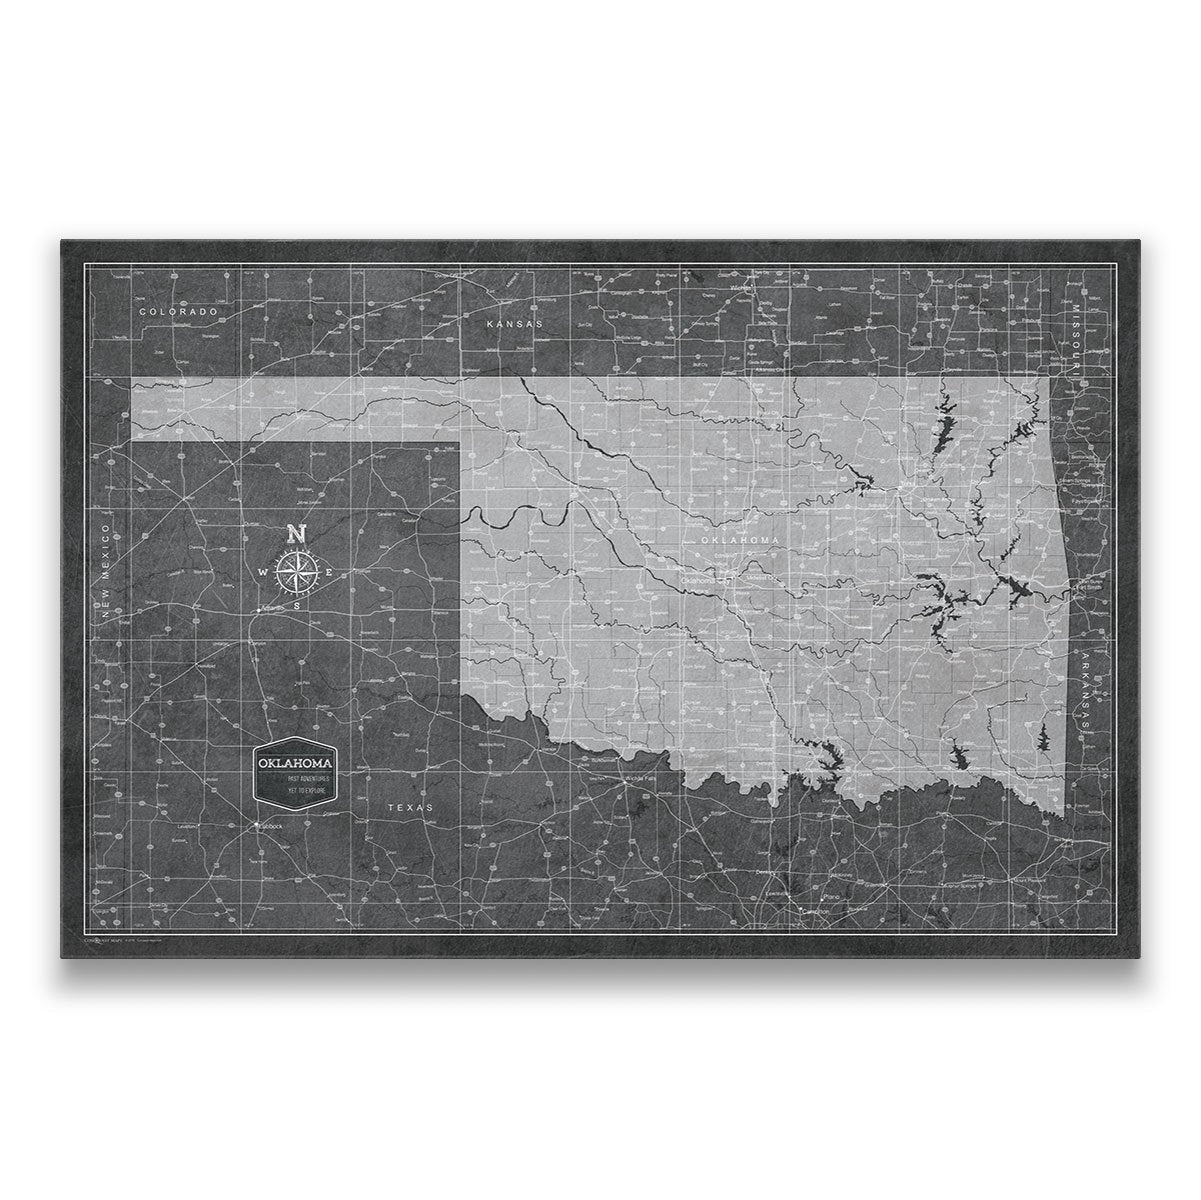 State Map Of Kansas And Oklahoma.Oklahoma Travel Map Pin Board With Push Pins Modern Slate